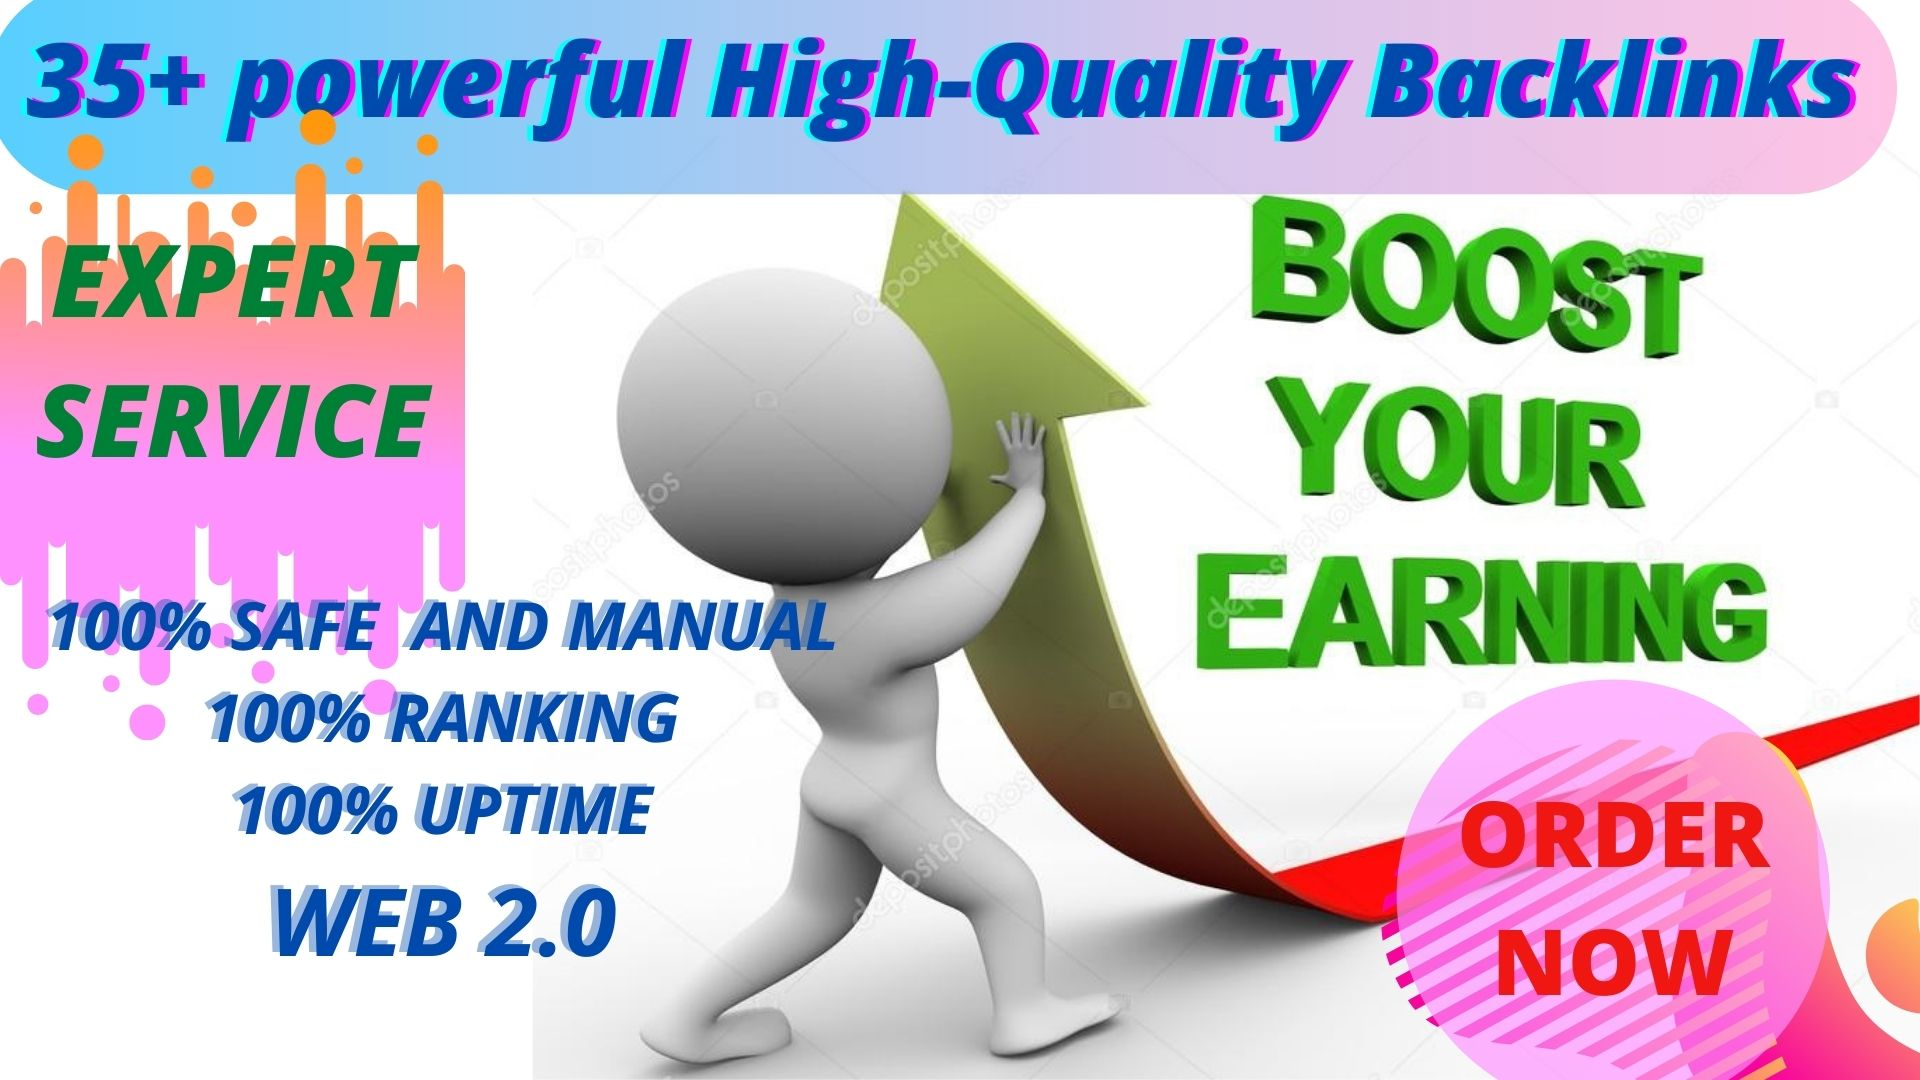 Get powerful 35+ pbn backlinks Letast update with high DA/PA on your homepage with unique website